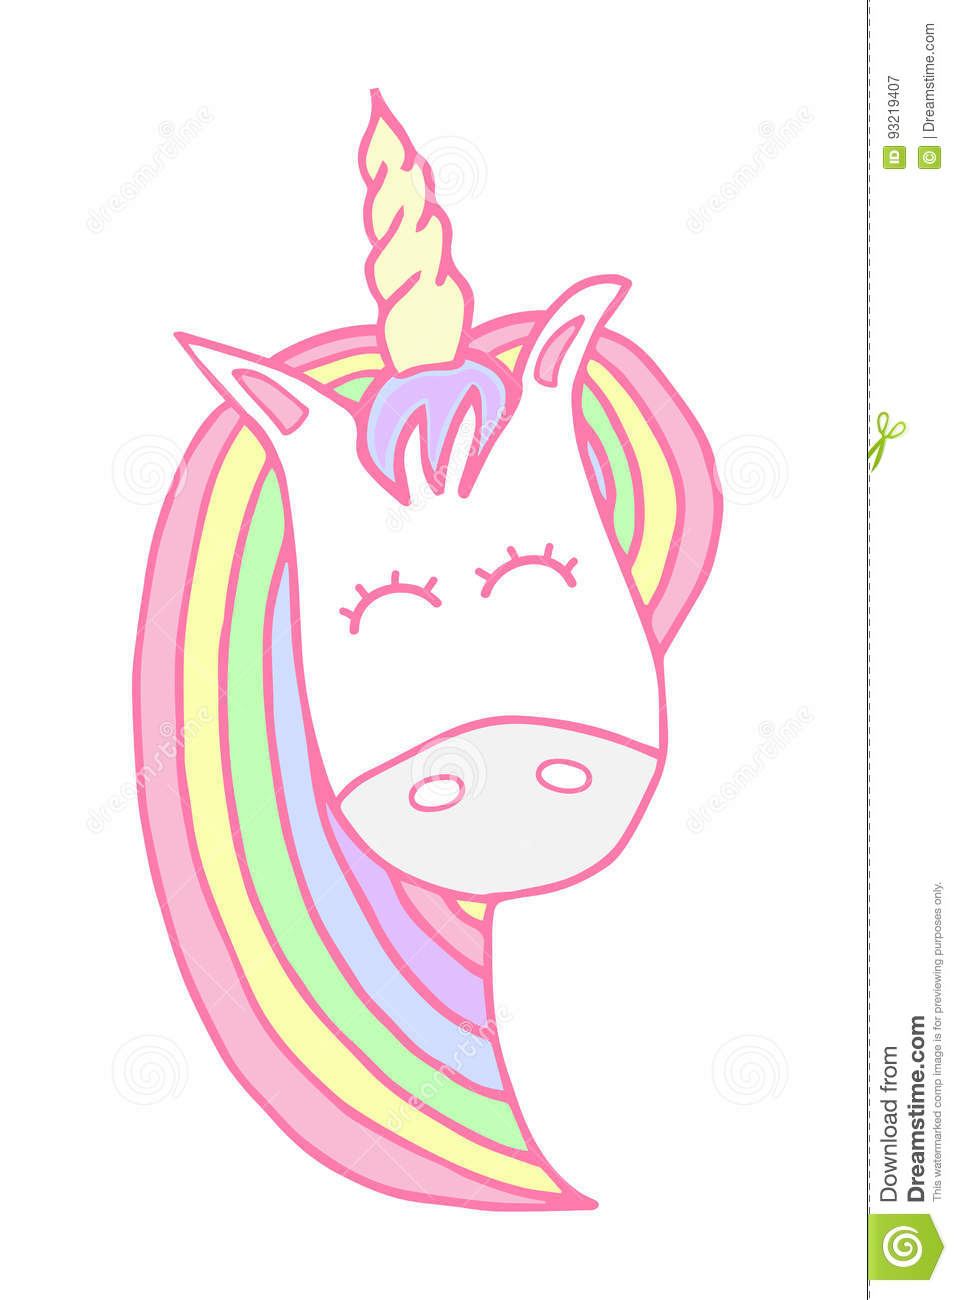 Cute and soft unicorns head vector illustration doodle drawing happy unicorn in light pastel baby colors